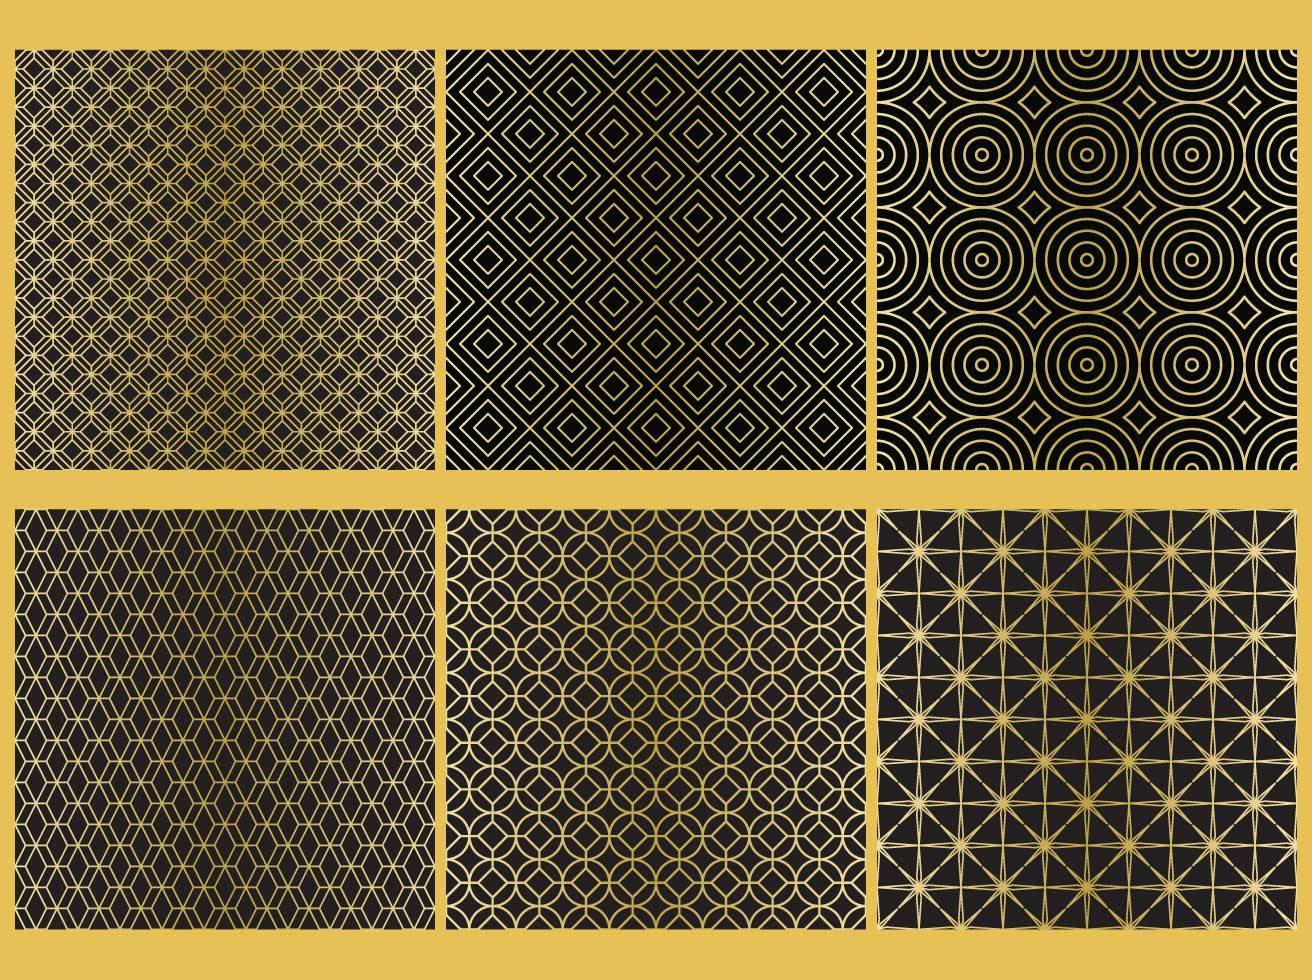 Golden Line Patterns